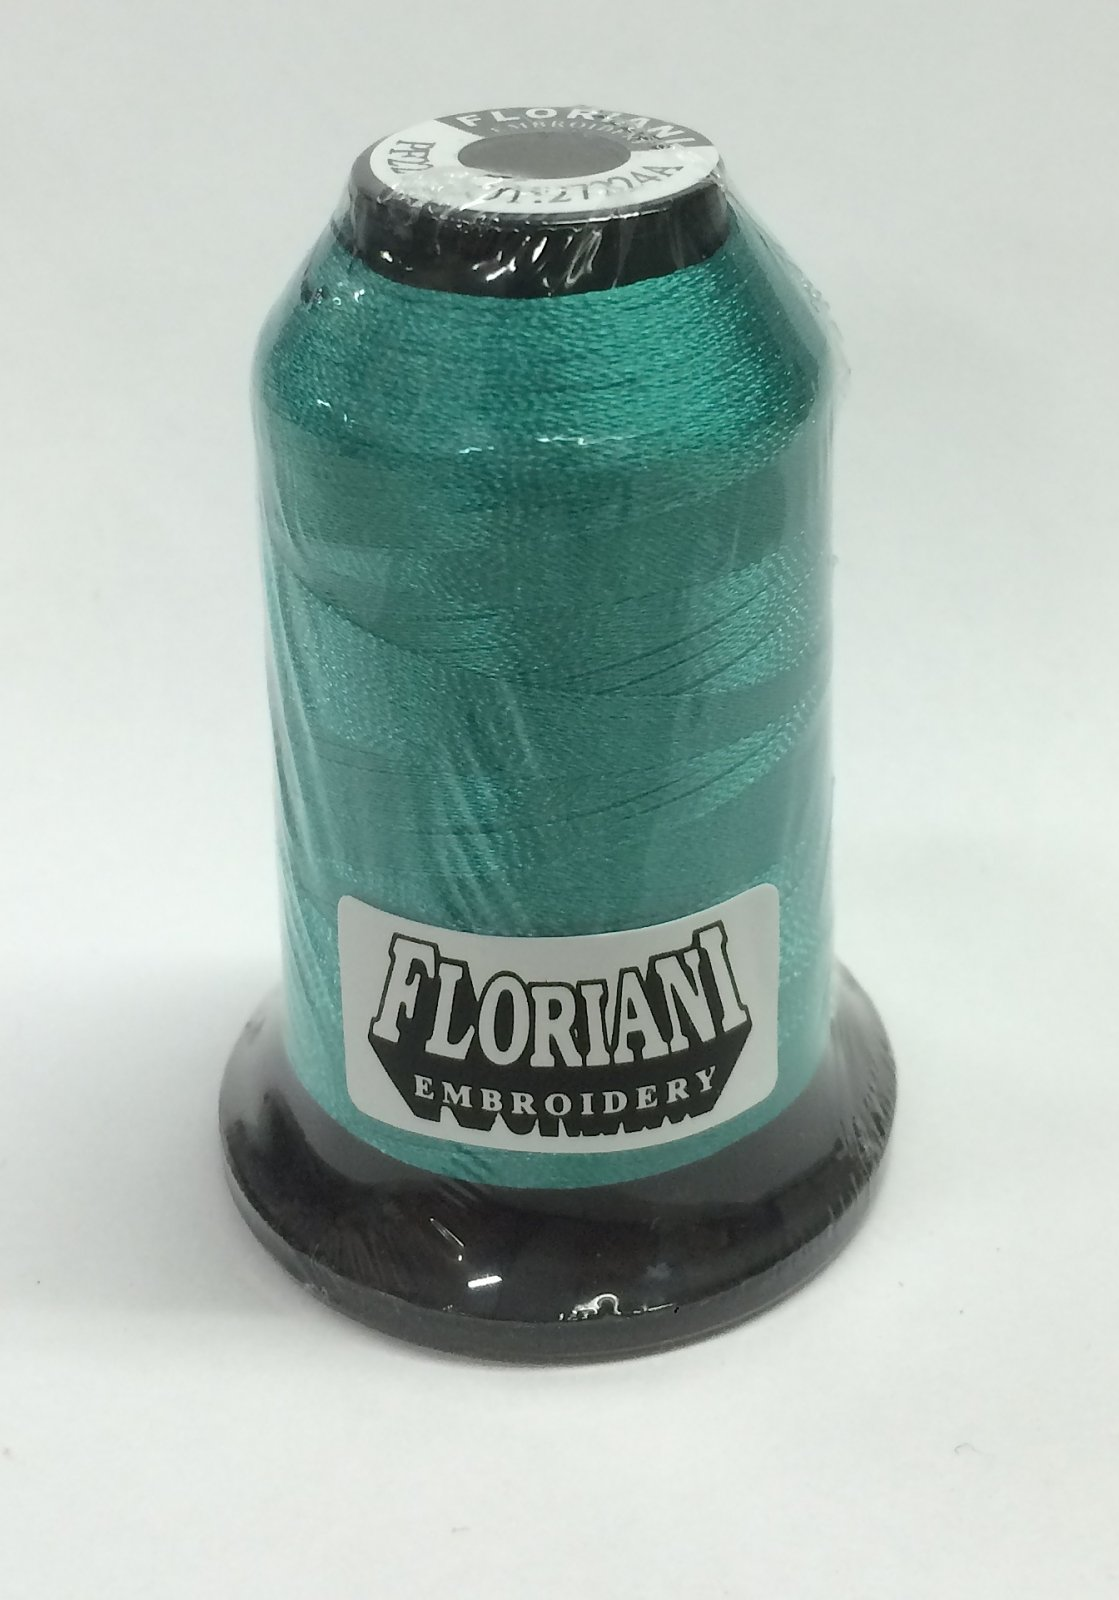 Floriani Embroidery Thread Color #0221